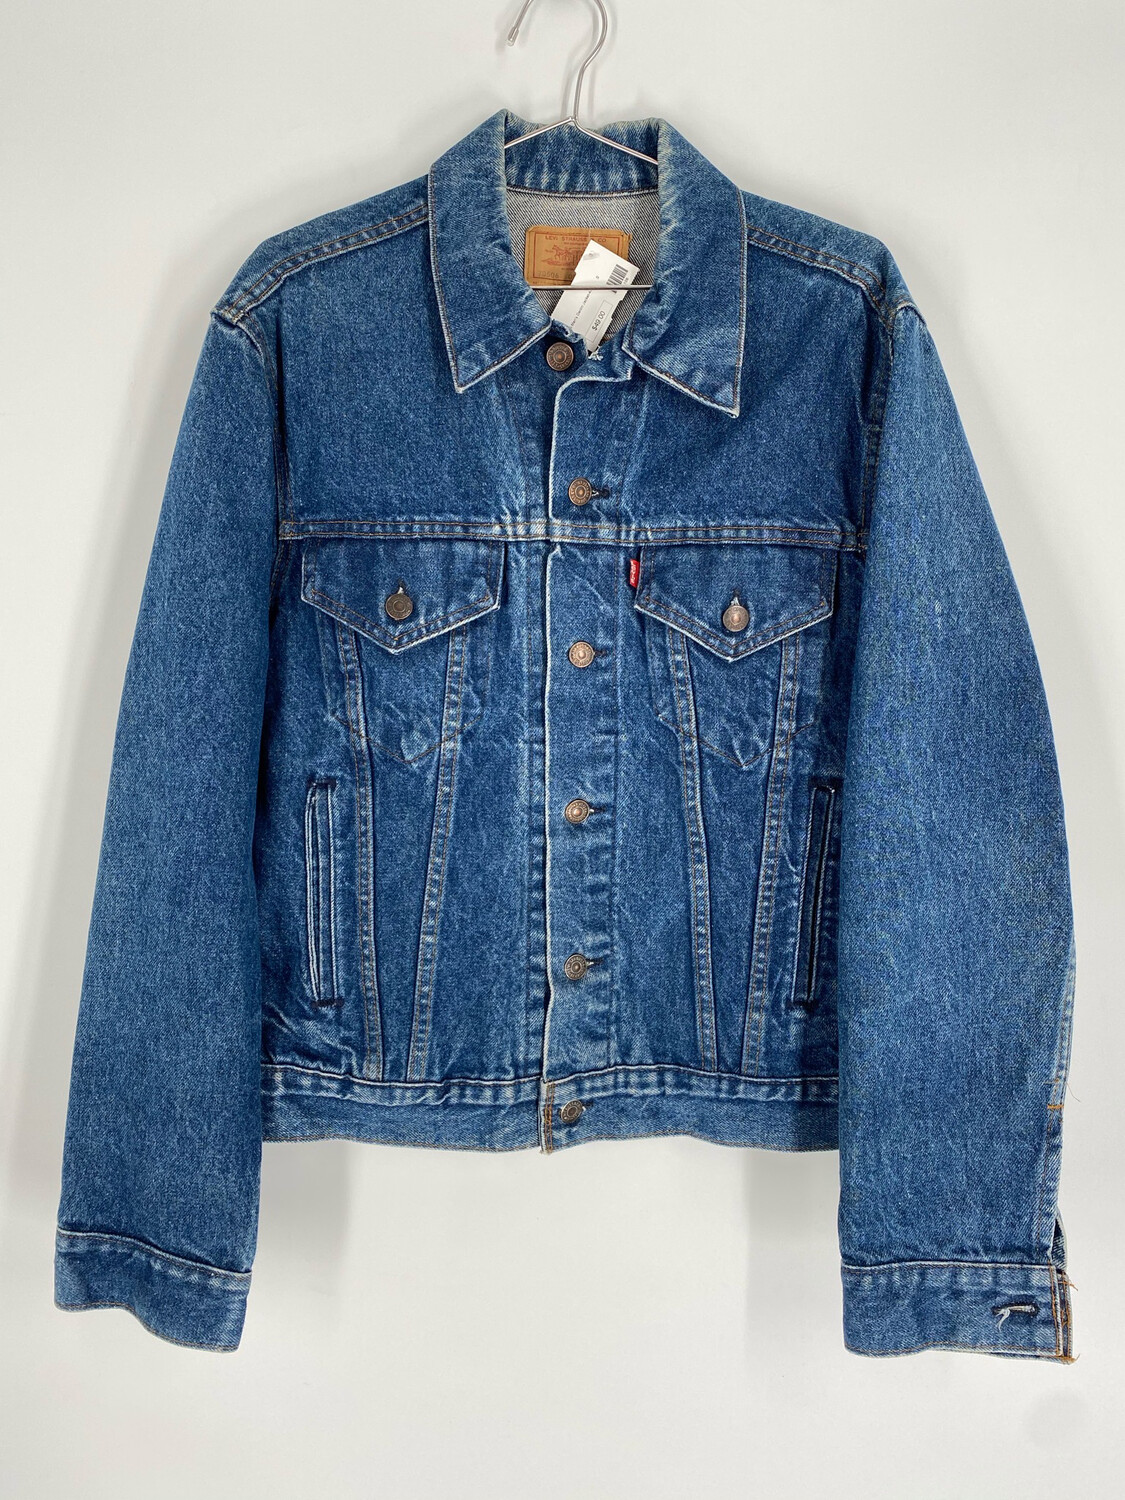 Levi's Red Tab Vintage Jacket Size S